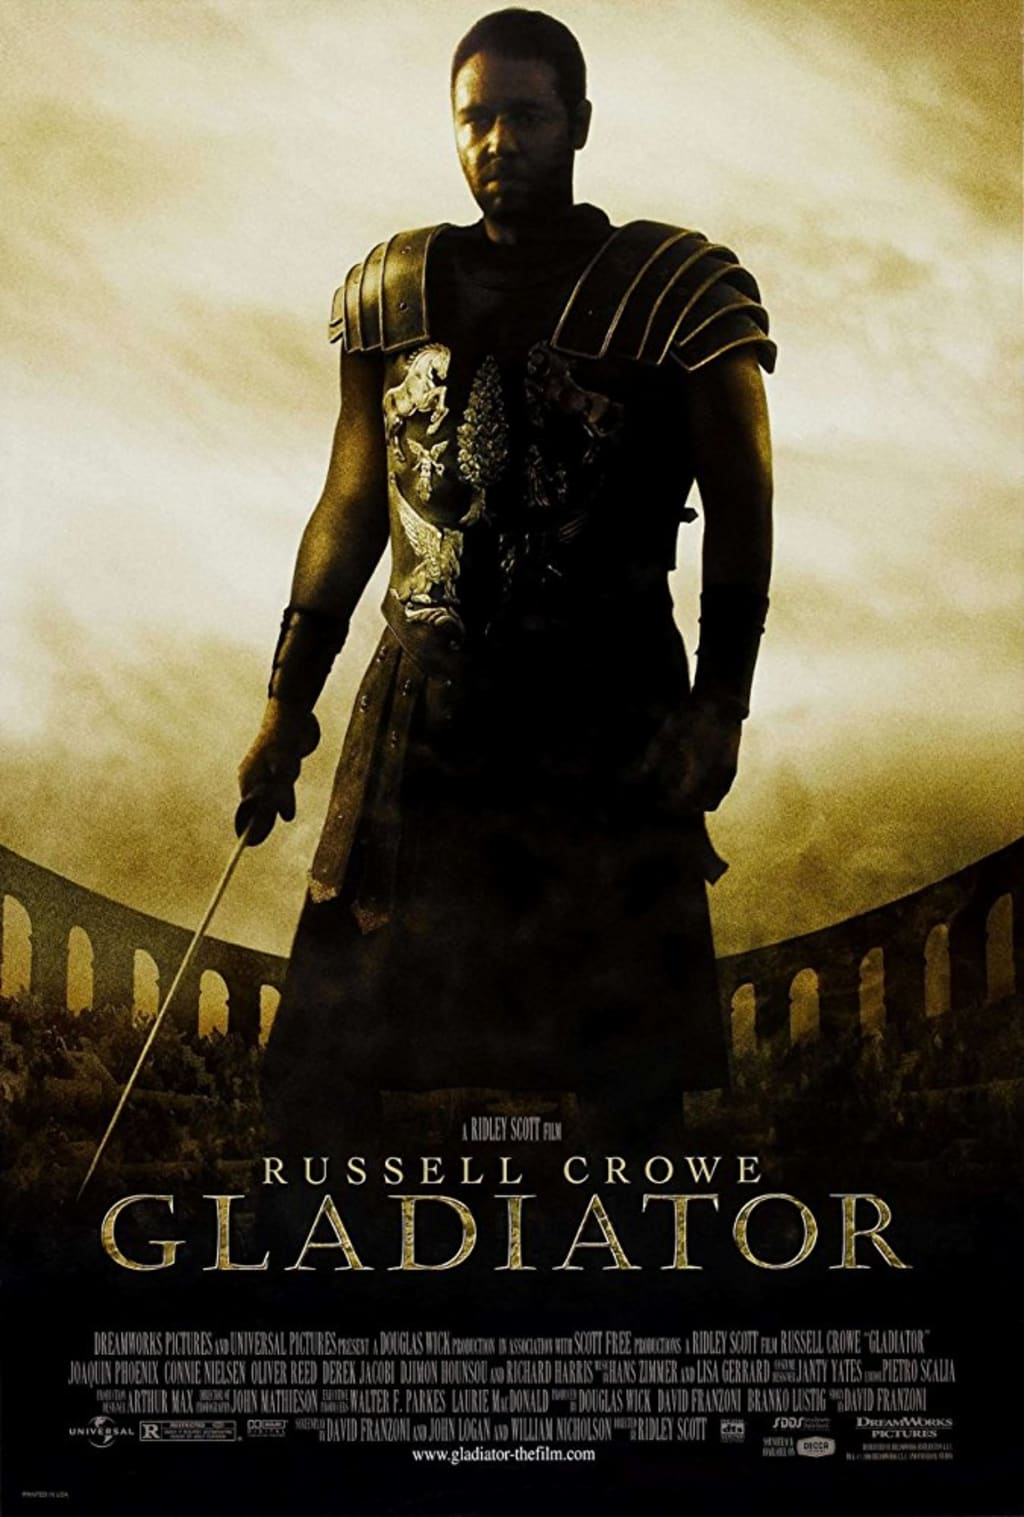 The Real Gladiator of the Roman Empire